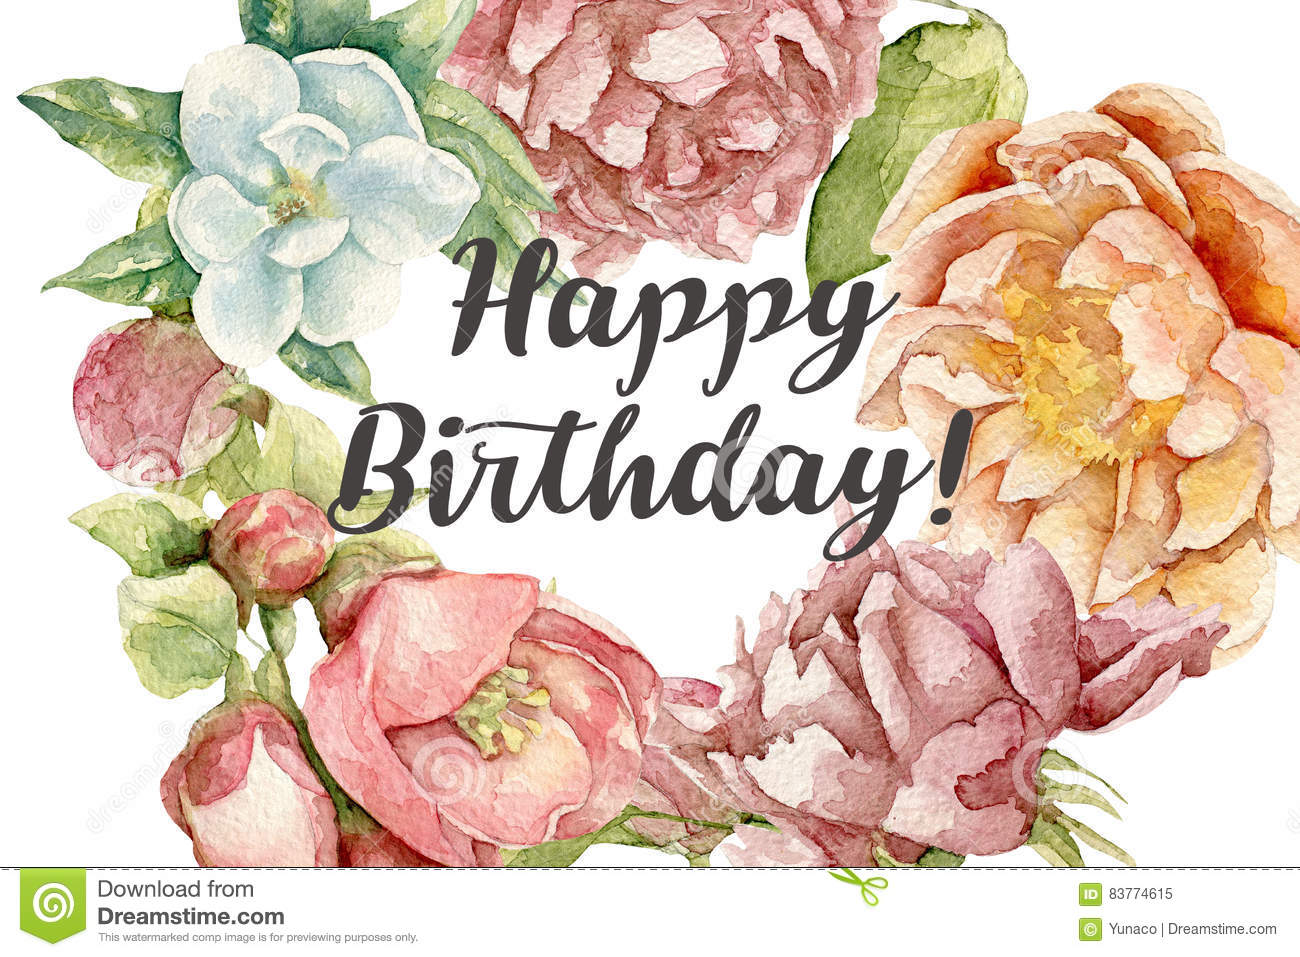 Happy birthday card with watercolor flowers stock illustration happy birthday card with watercolor flowers texture ornament izmirmasajfo